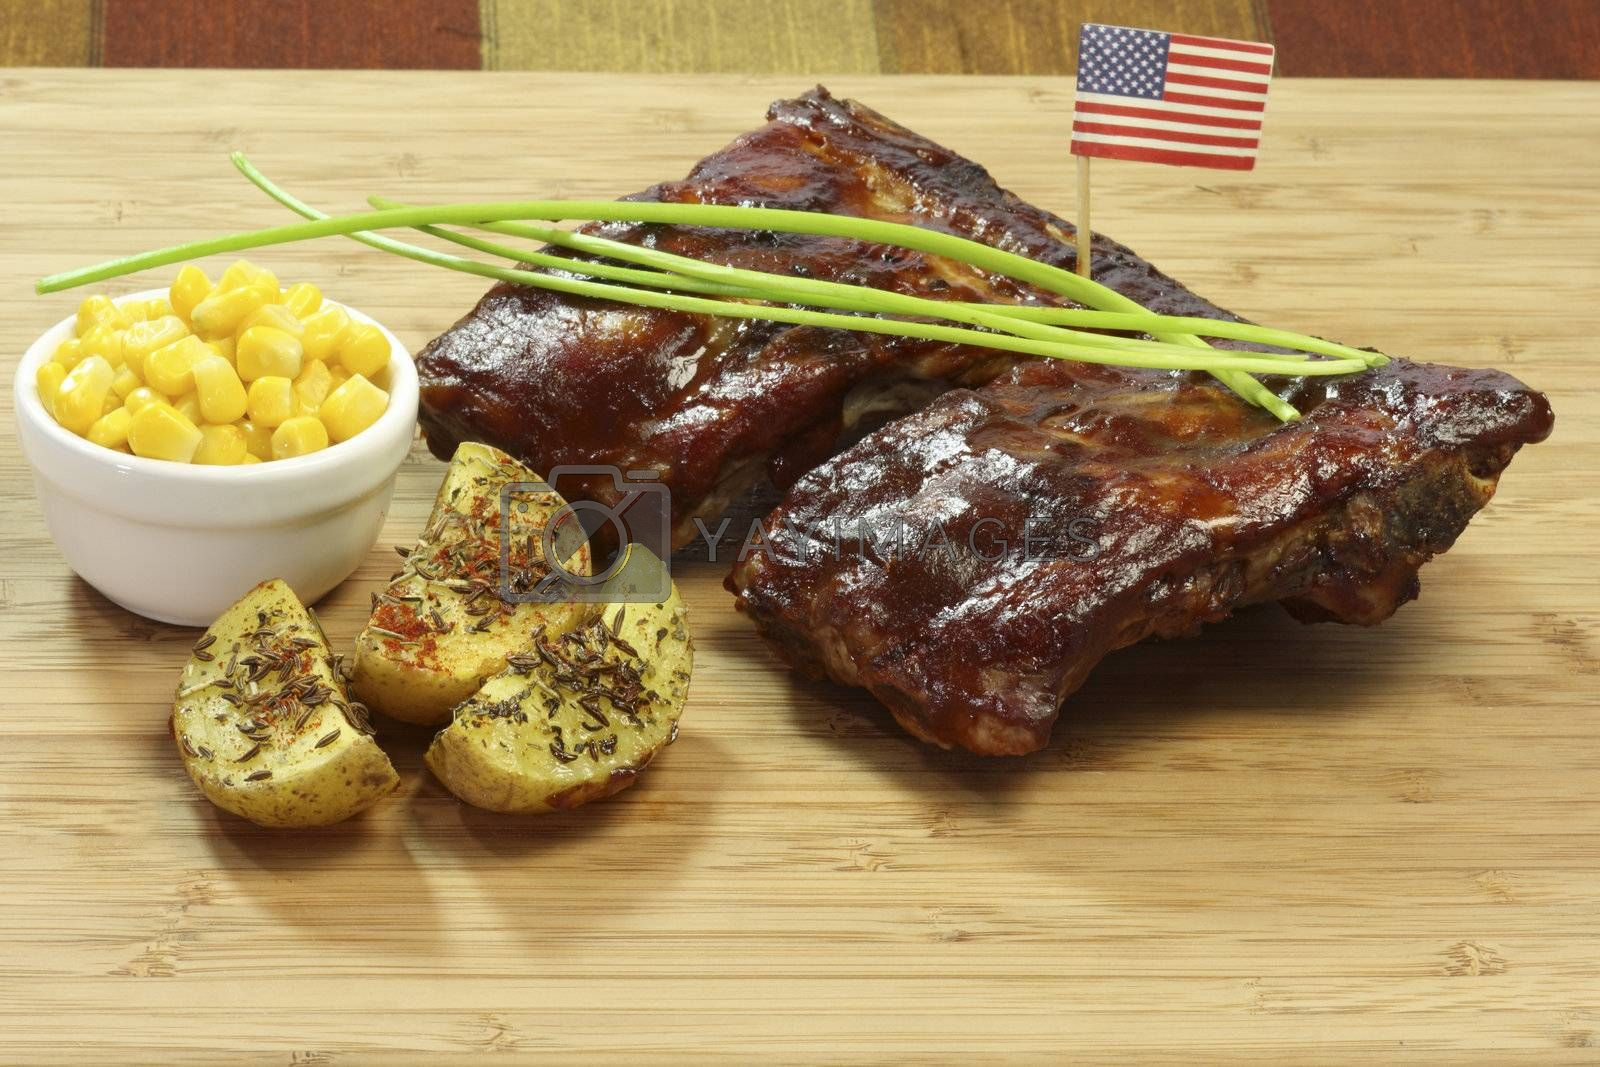 Grilled spare ribs with potatoes and corn